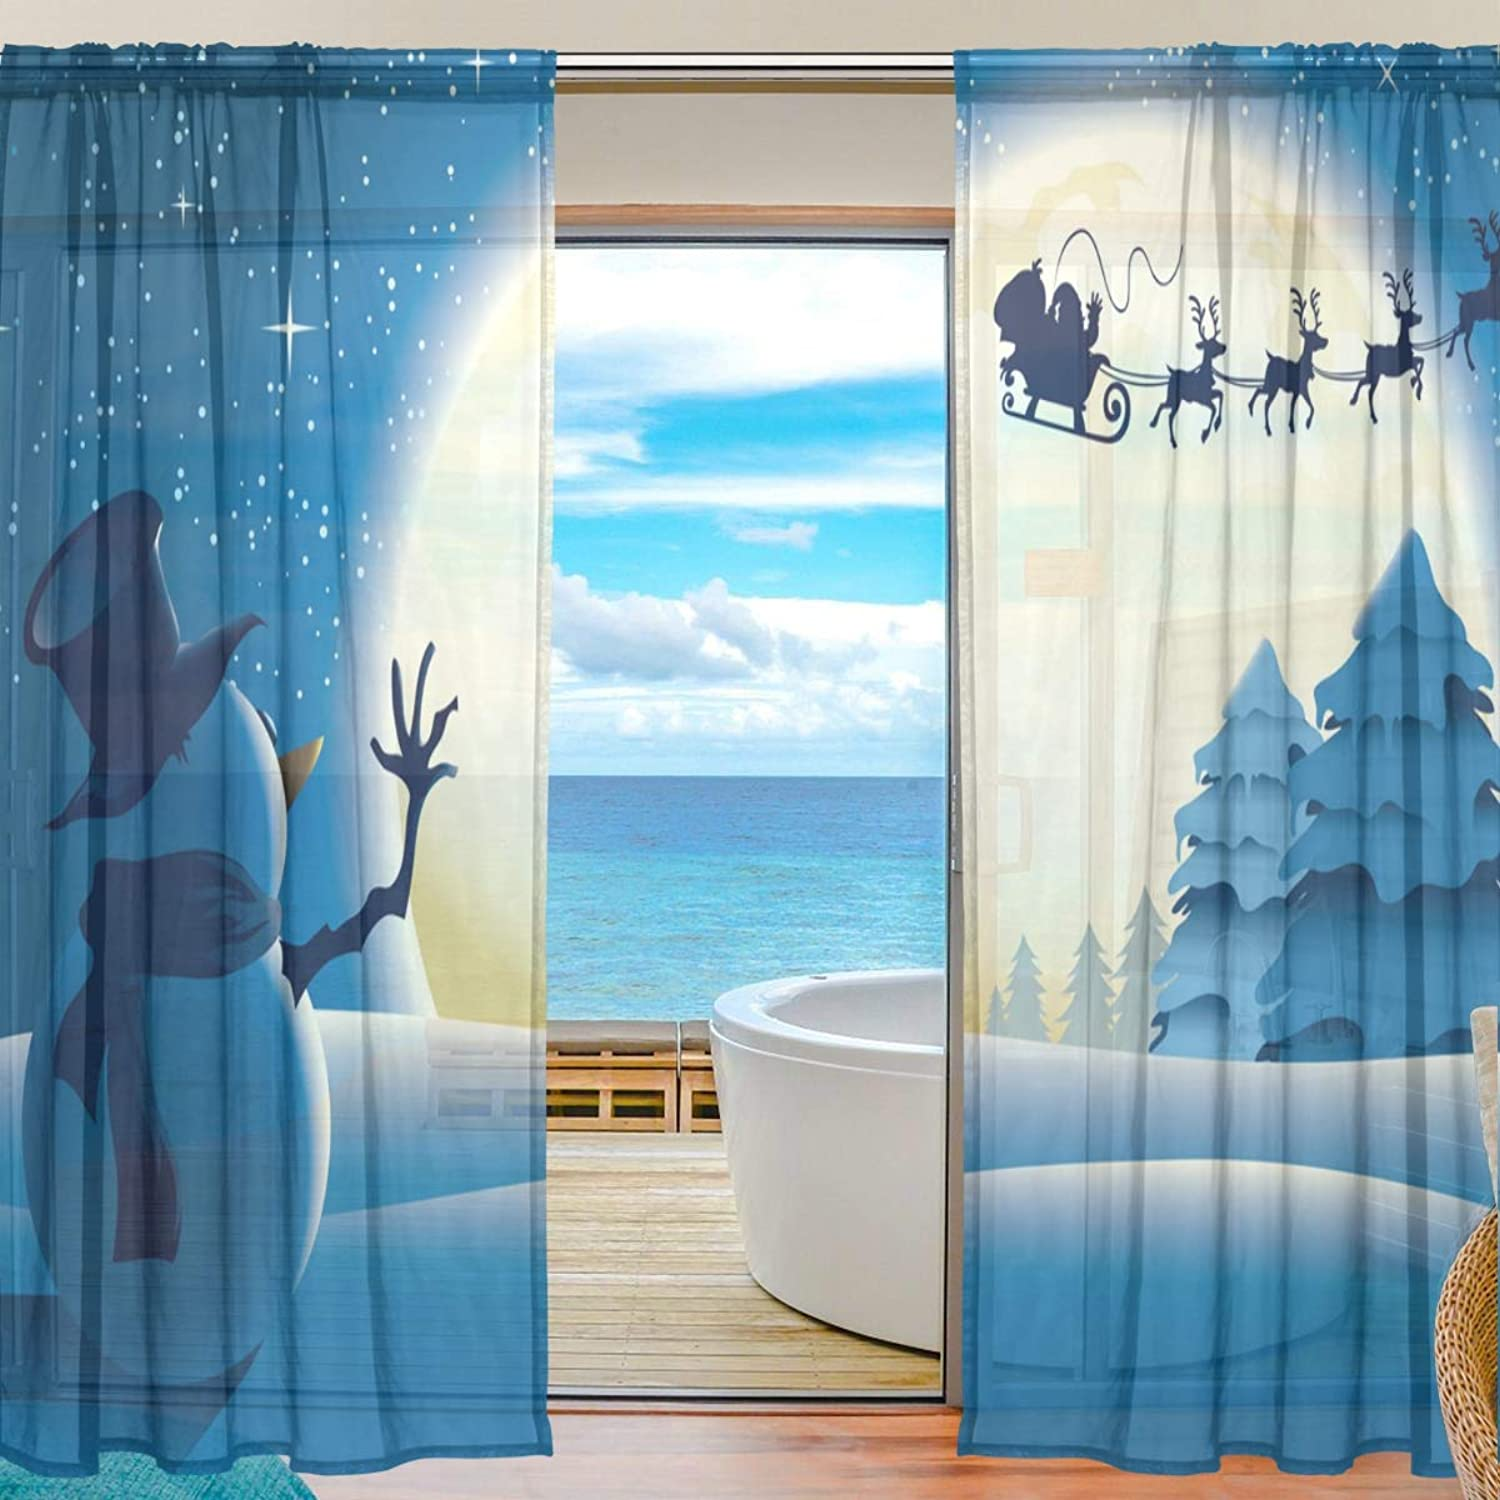 Merry Christmas Snowman 2 Pieces Curtain Panel 55 x 78 inches for Bedroom Living Room